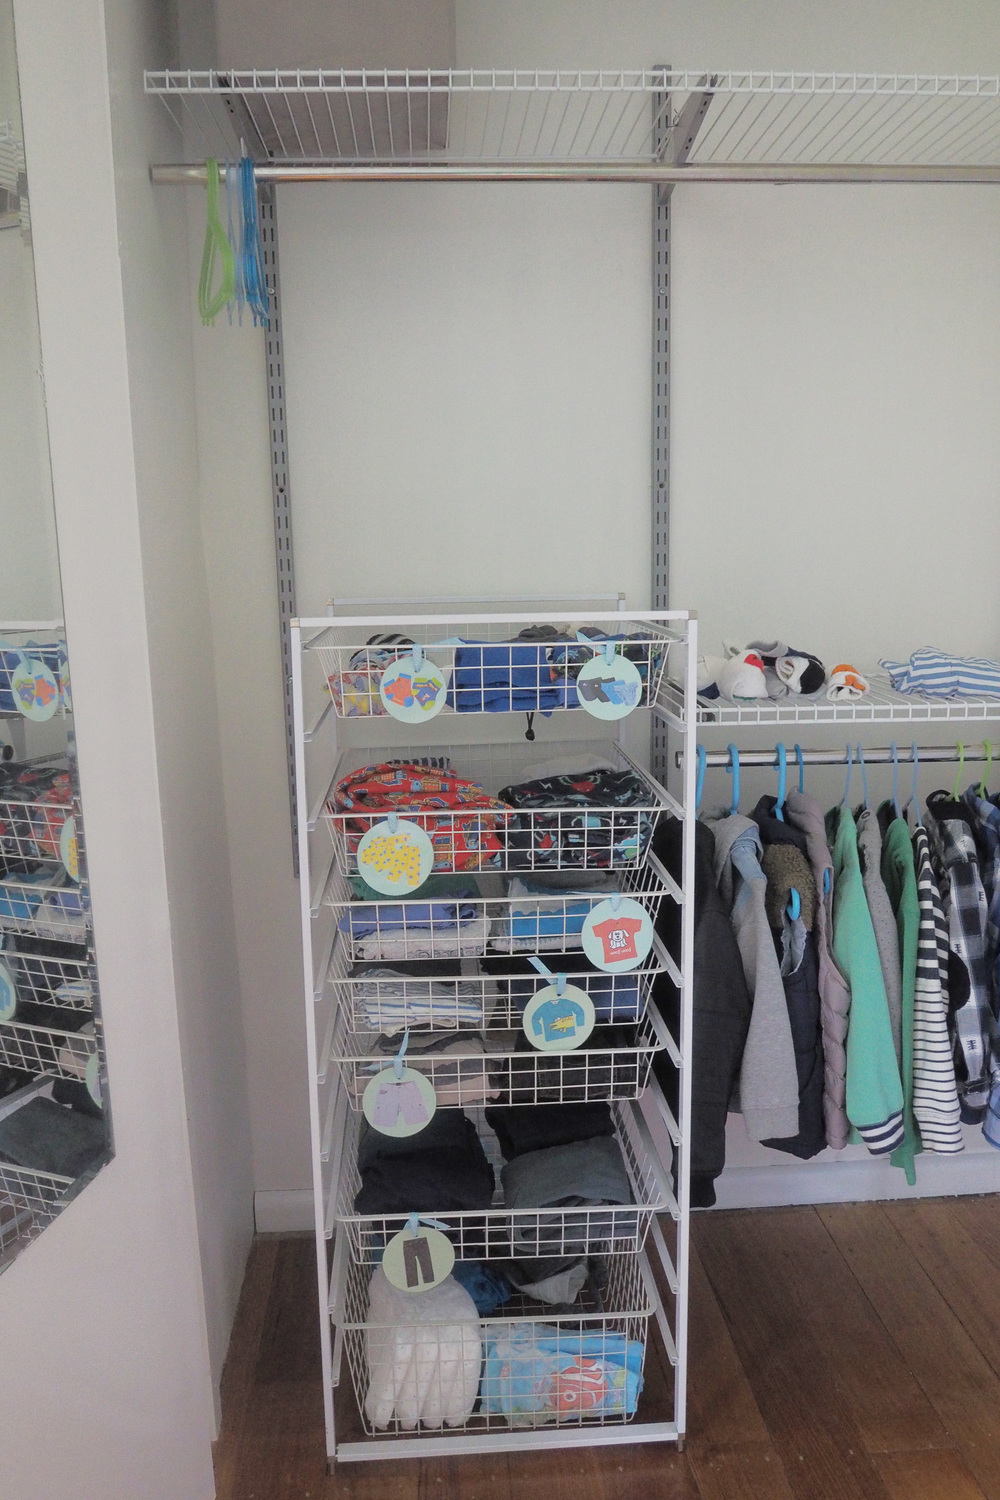 Organising kids' clothes in the wardrobe - The Organised You